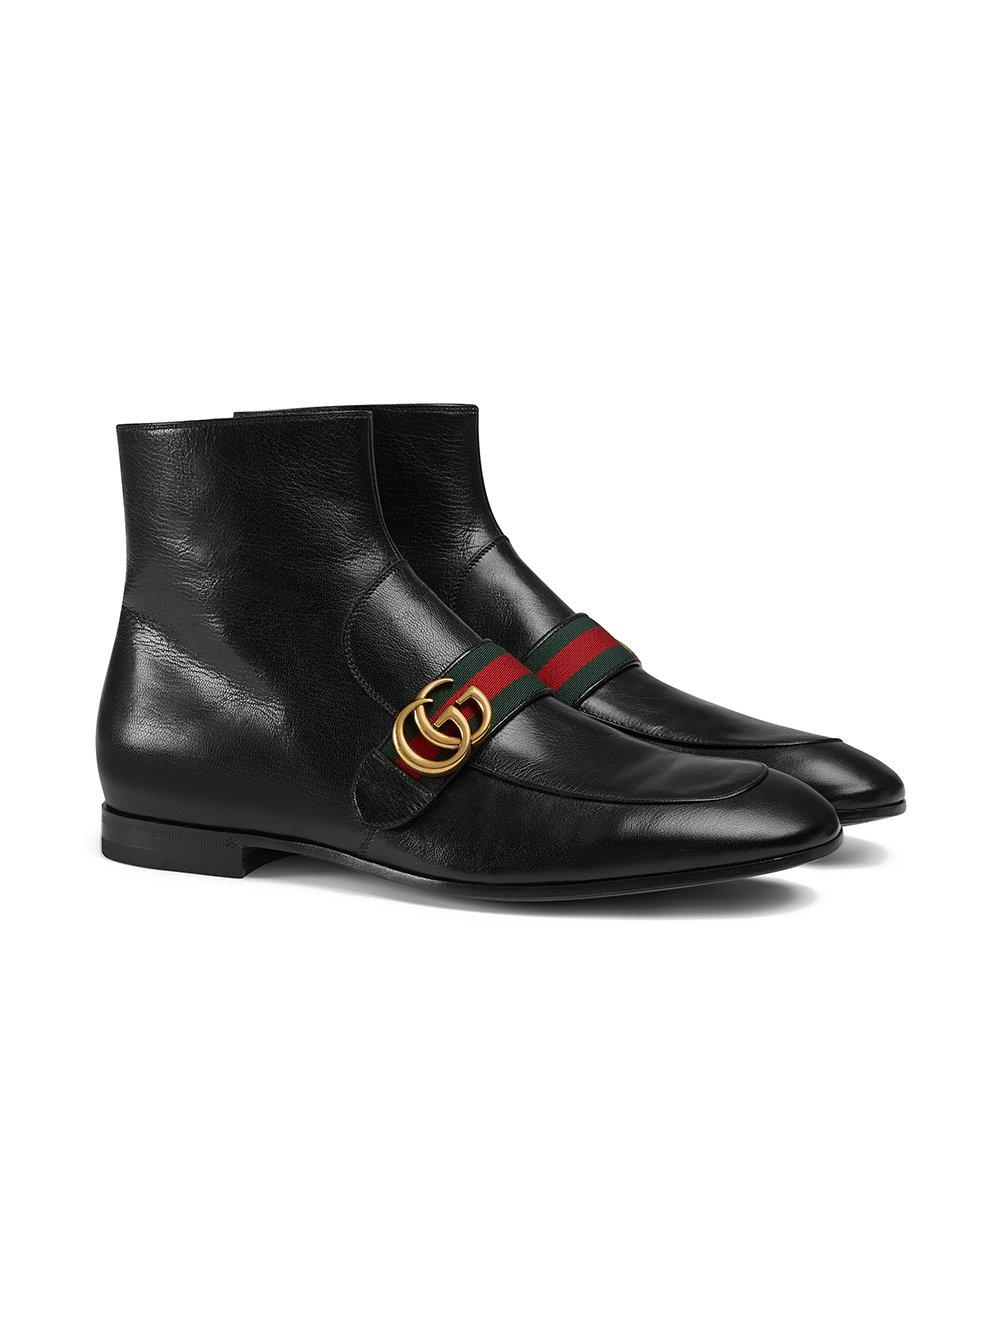 Gucci - Black Leather Boots With Double G for Men - Lyst. View fullscreen e5683b61134